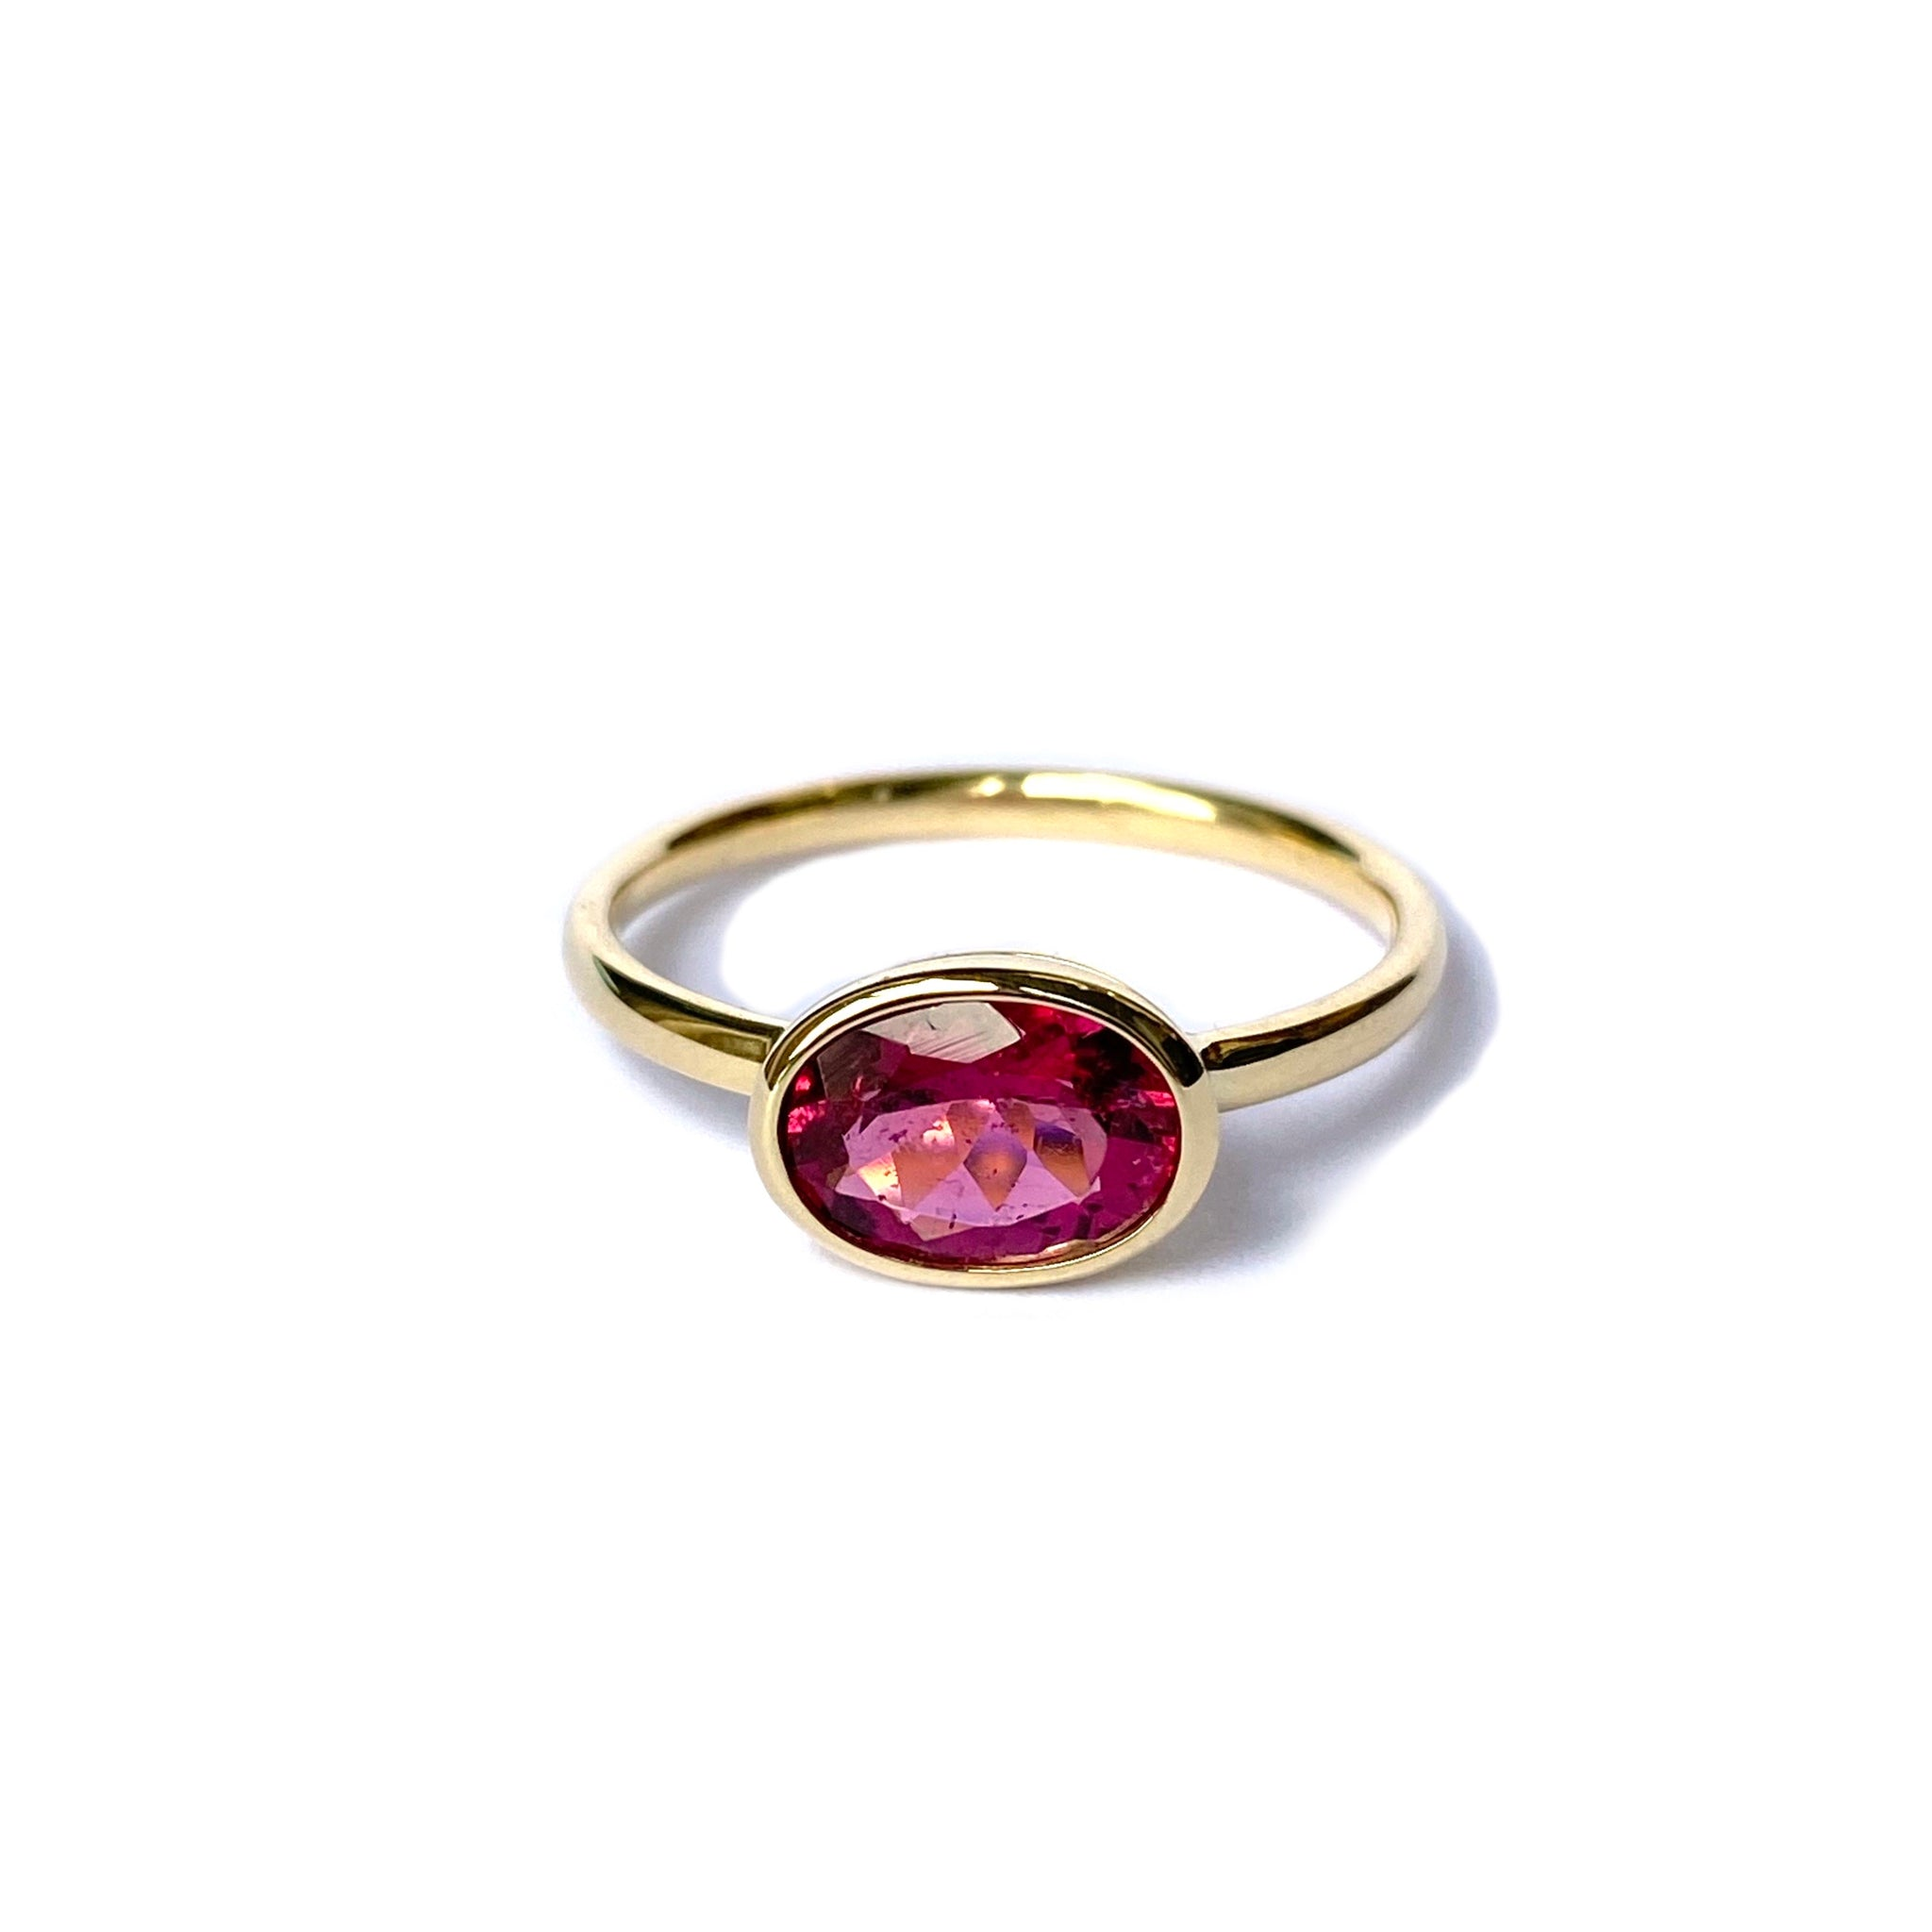 14k yellow gold ring set with a Pink Tourmaline